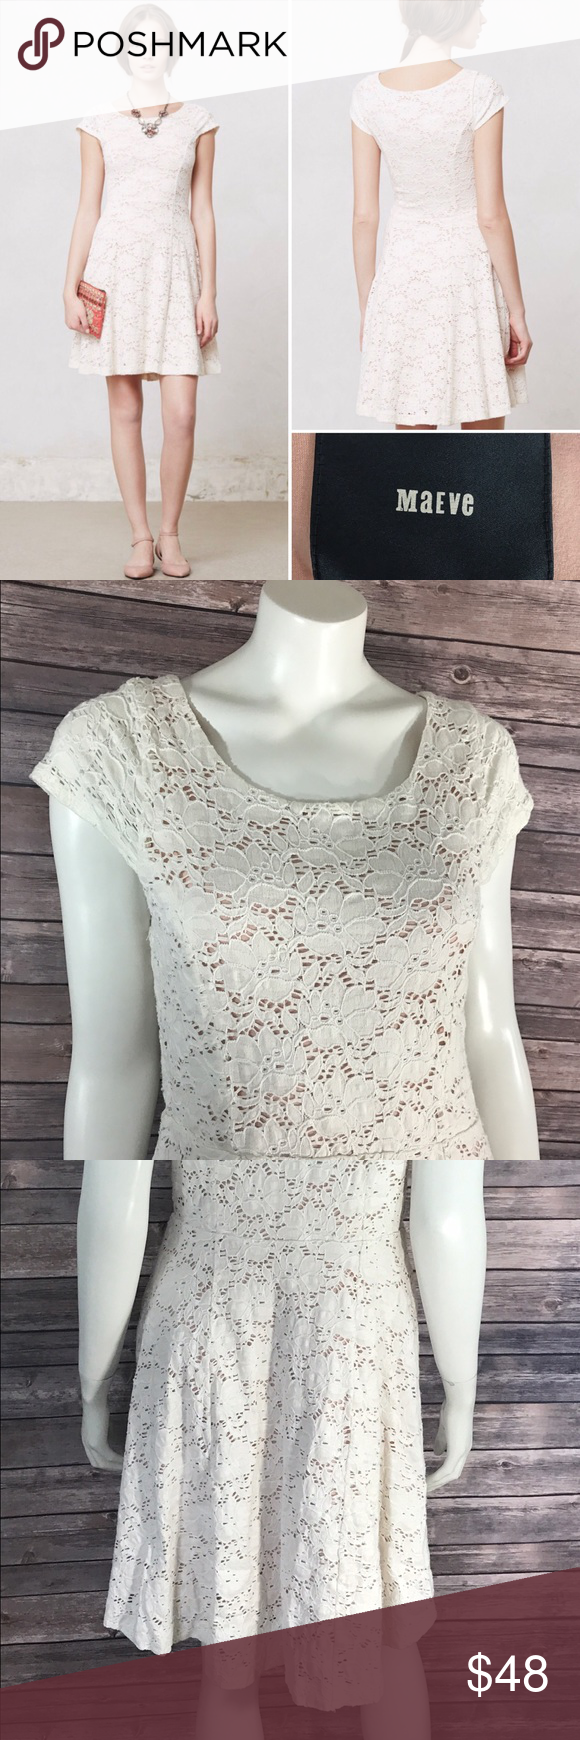 Maeve Dress Large Dayflower Lace Ivory Cap Sleeve Measurements: (in inches) - Underarm to underarm: 17 - Length: 38 - Waist: 32  Good, gently used condition Anthropologie Dresses